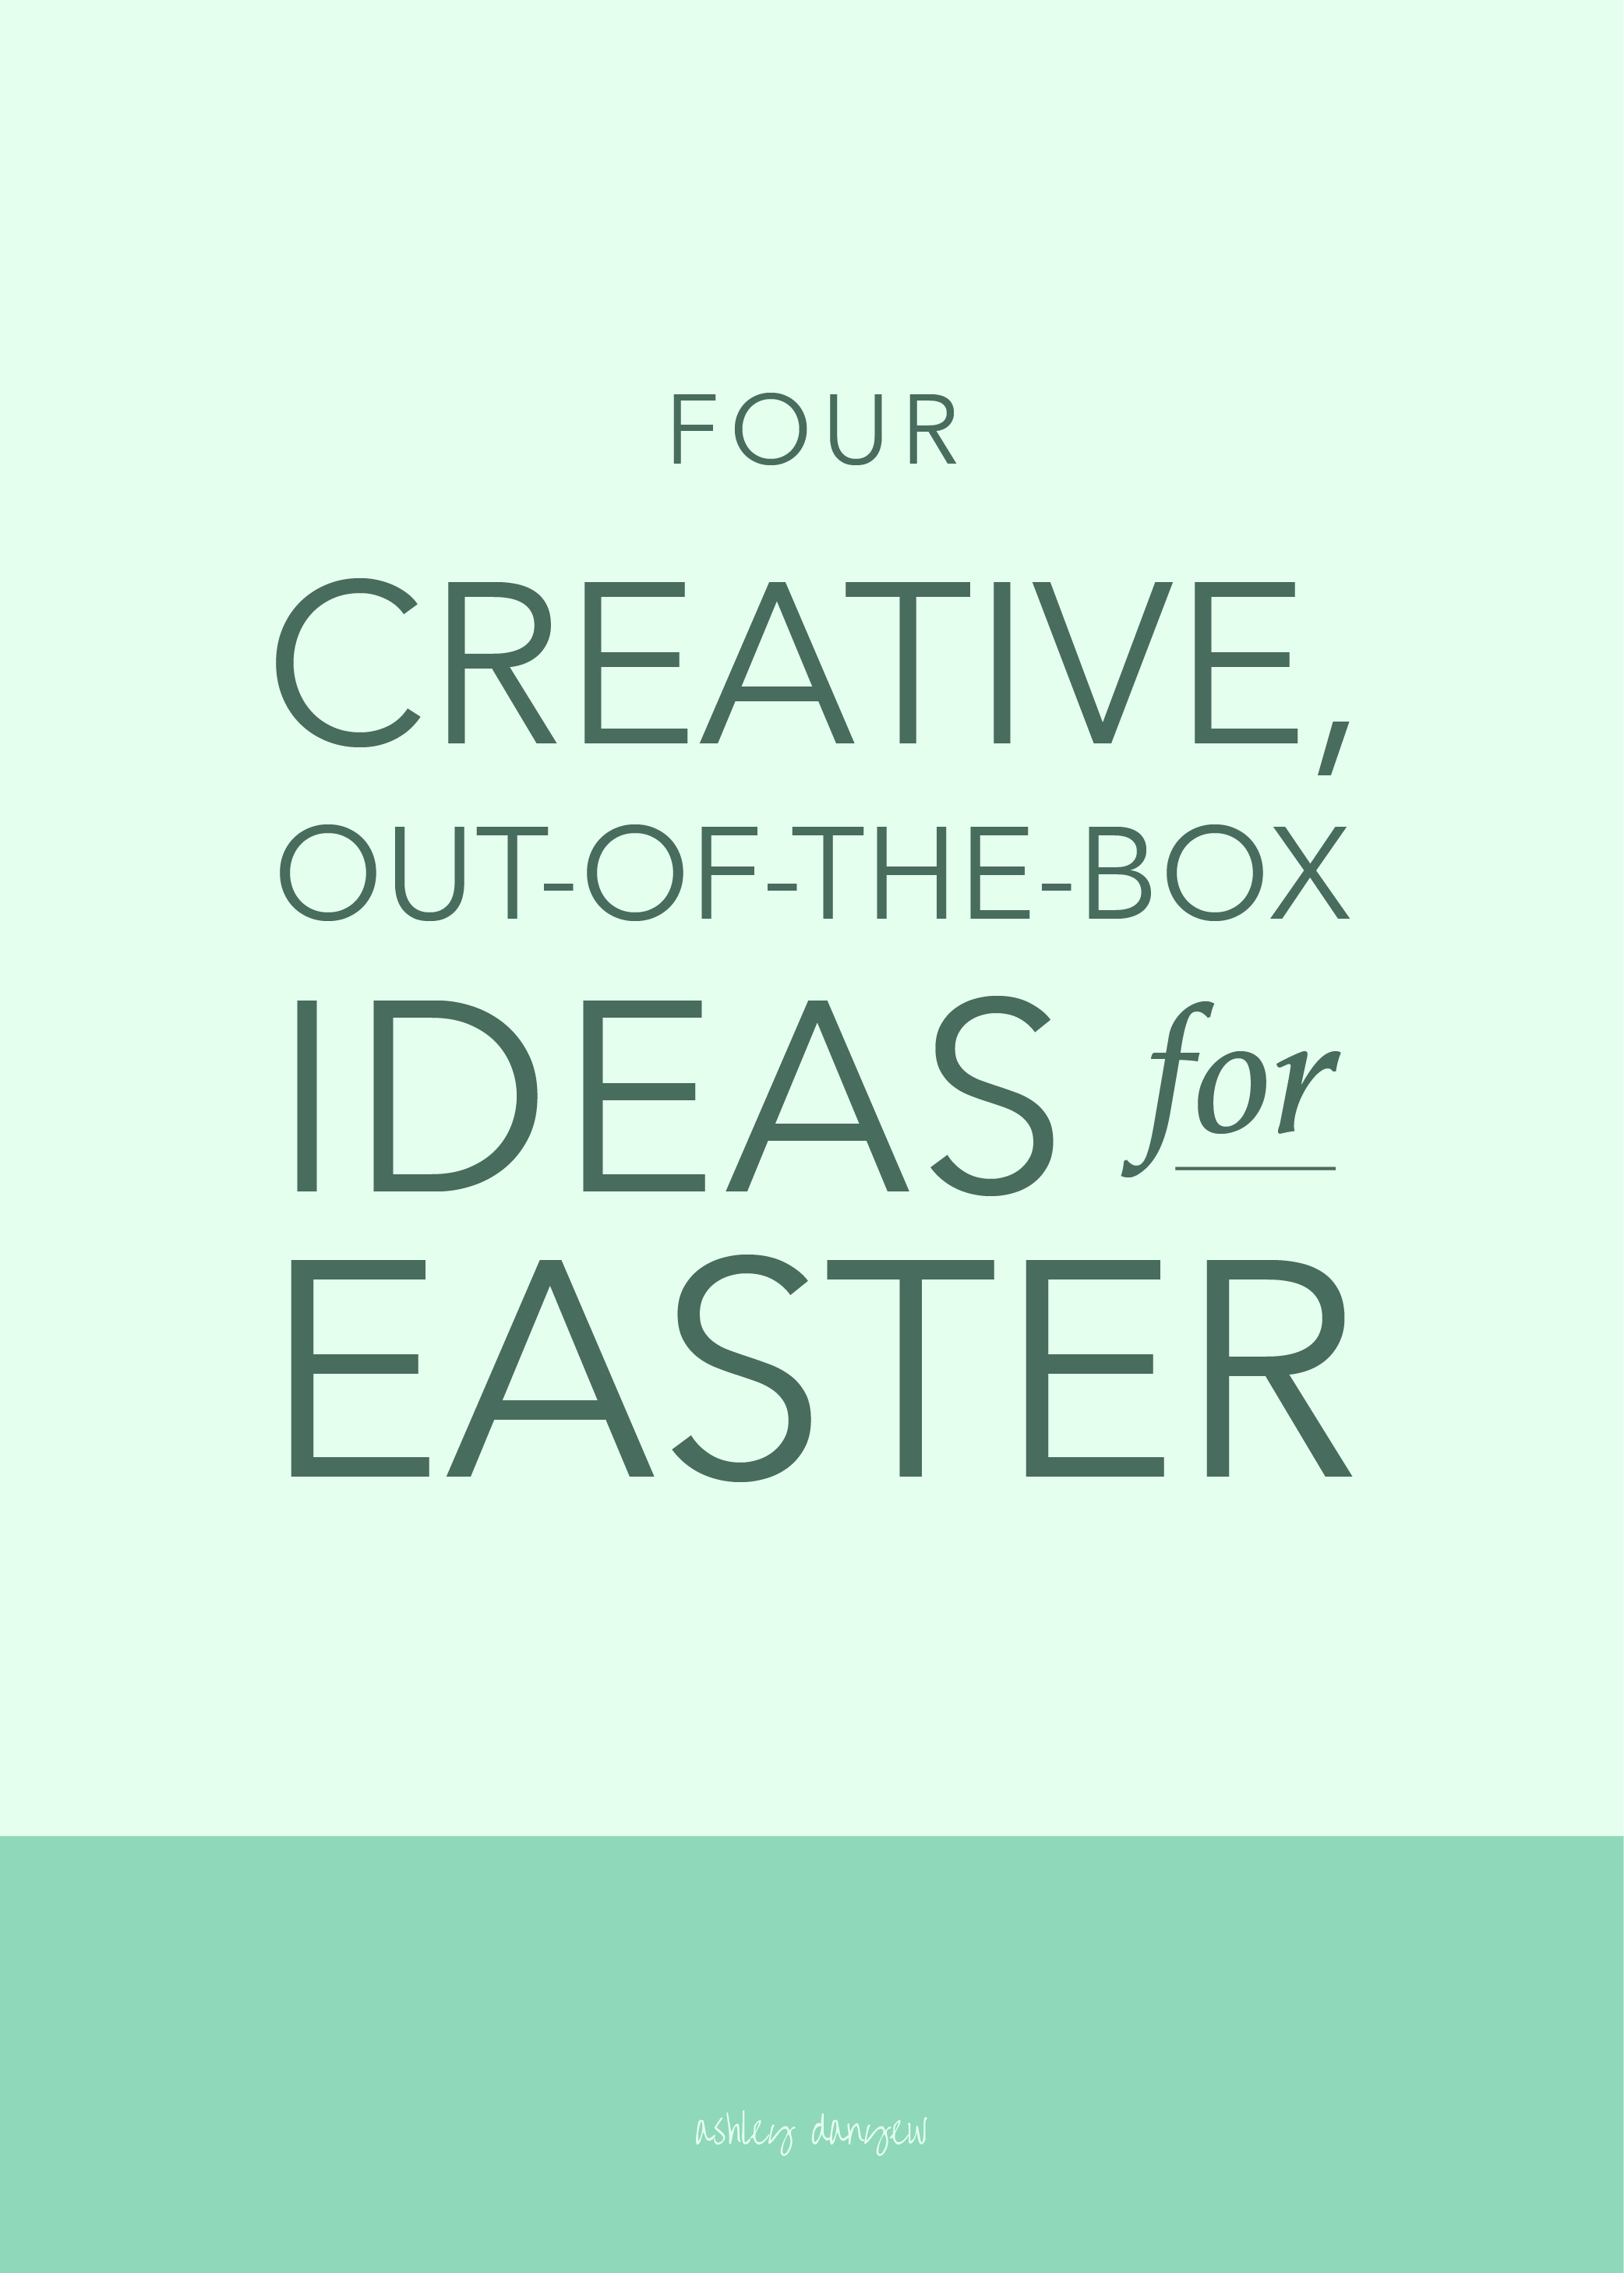 Copy of Four Creative, Out-of-the-Box Ideas for Easter